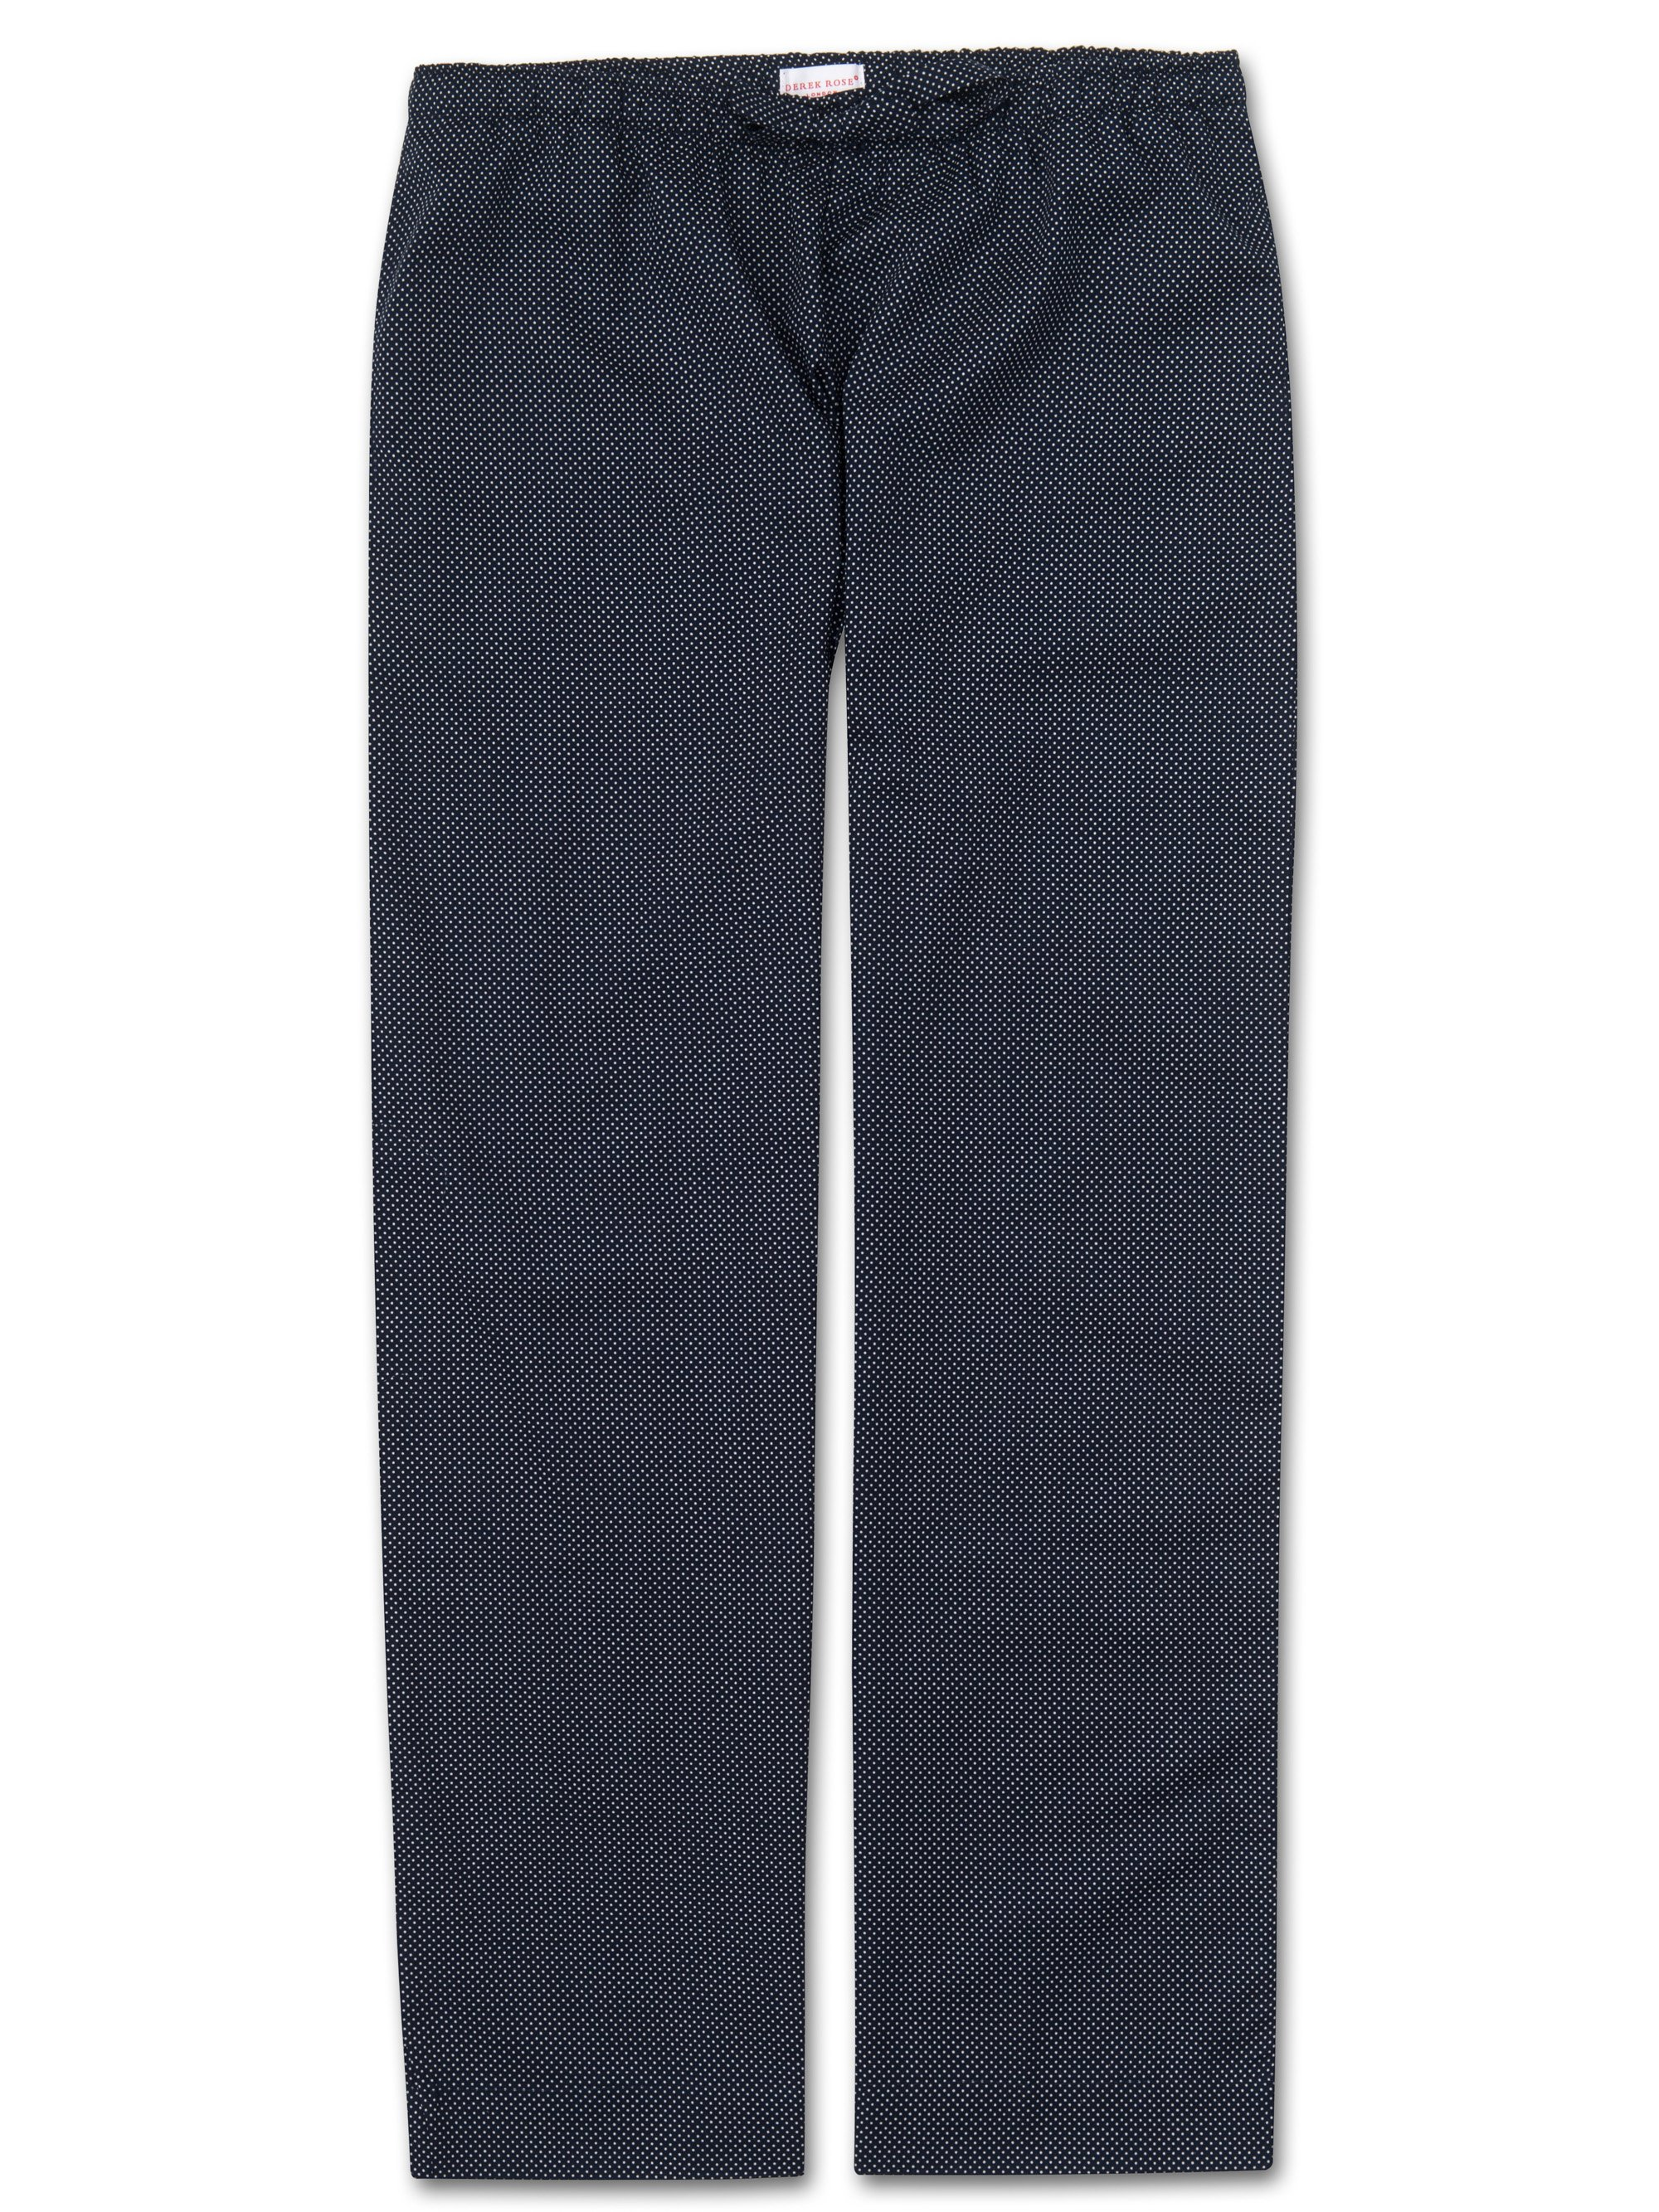 Women's Lounge Trousers Plaza 21 Pure Cotton Batiste Navy